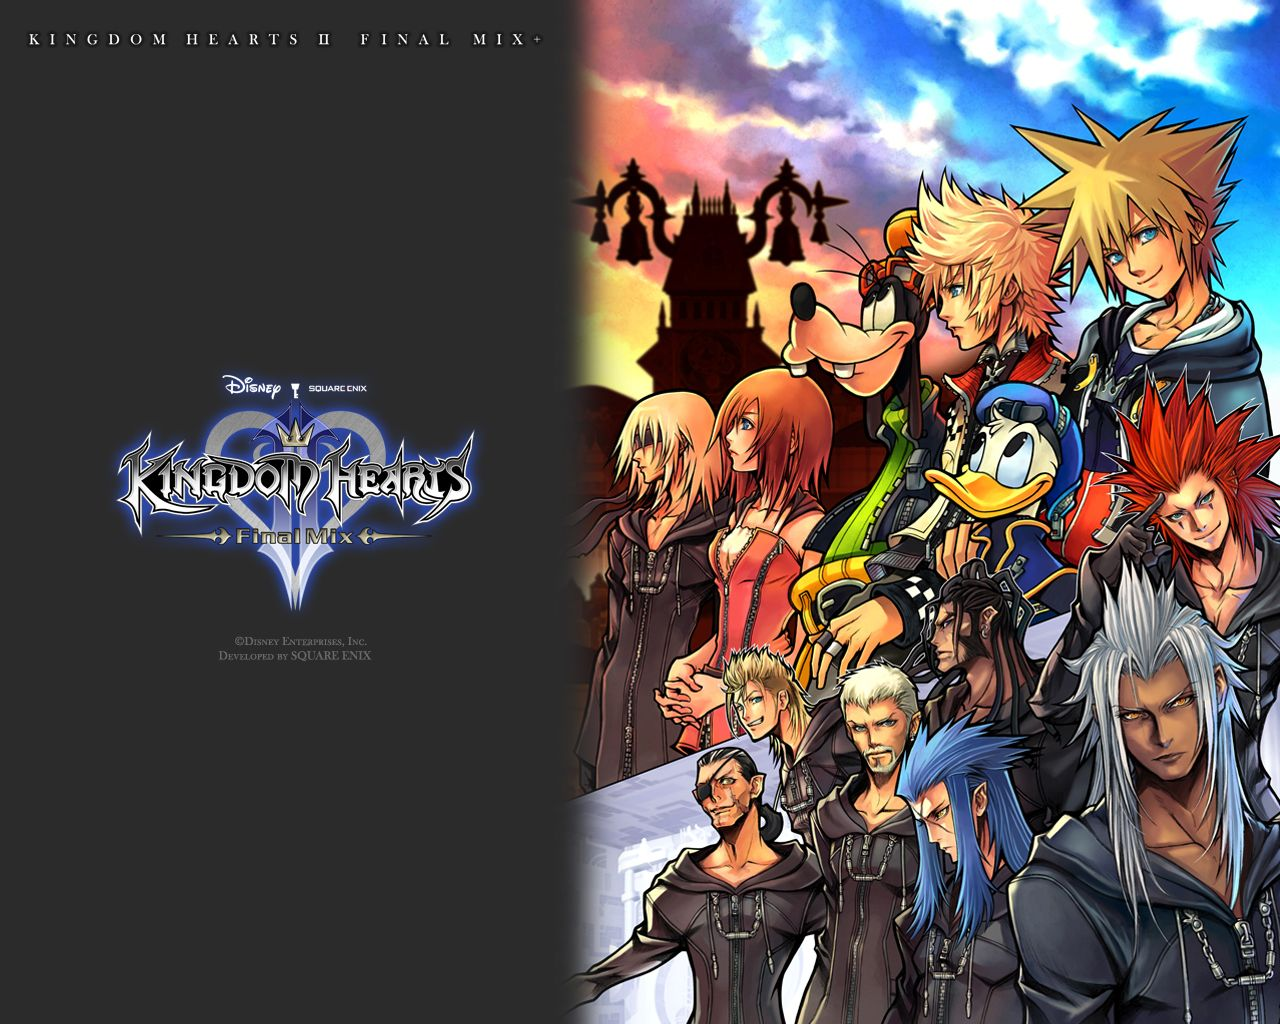 Fond ecran wallpaper Kingdom Hearts 2 Final Mix   JeuxVideofr 1280x1024